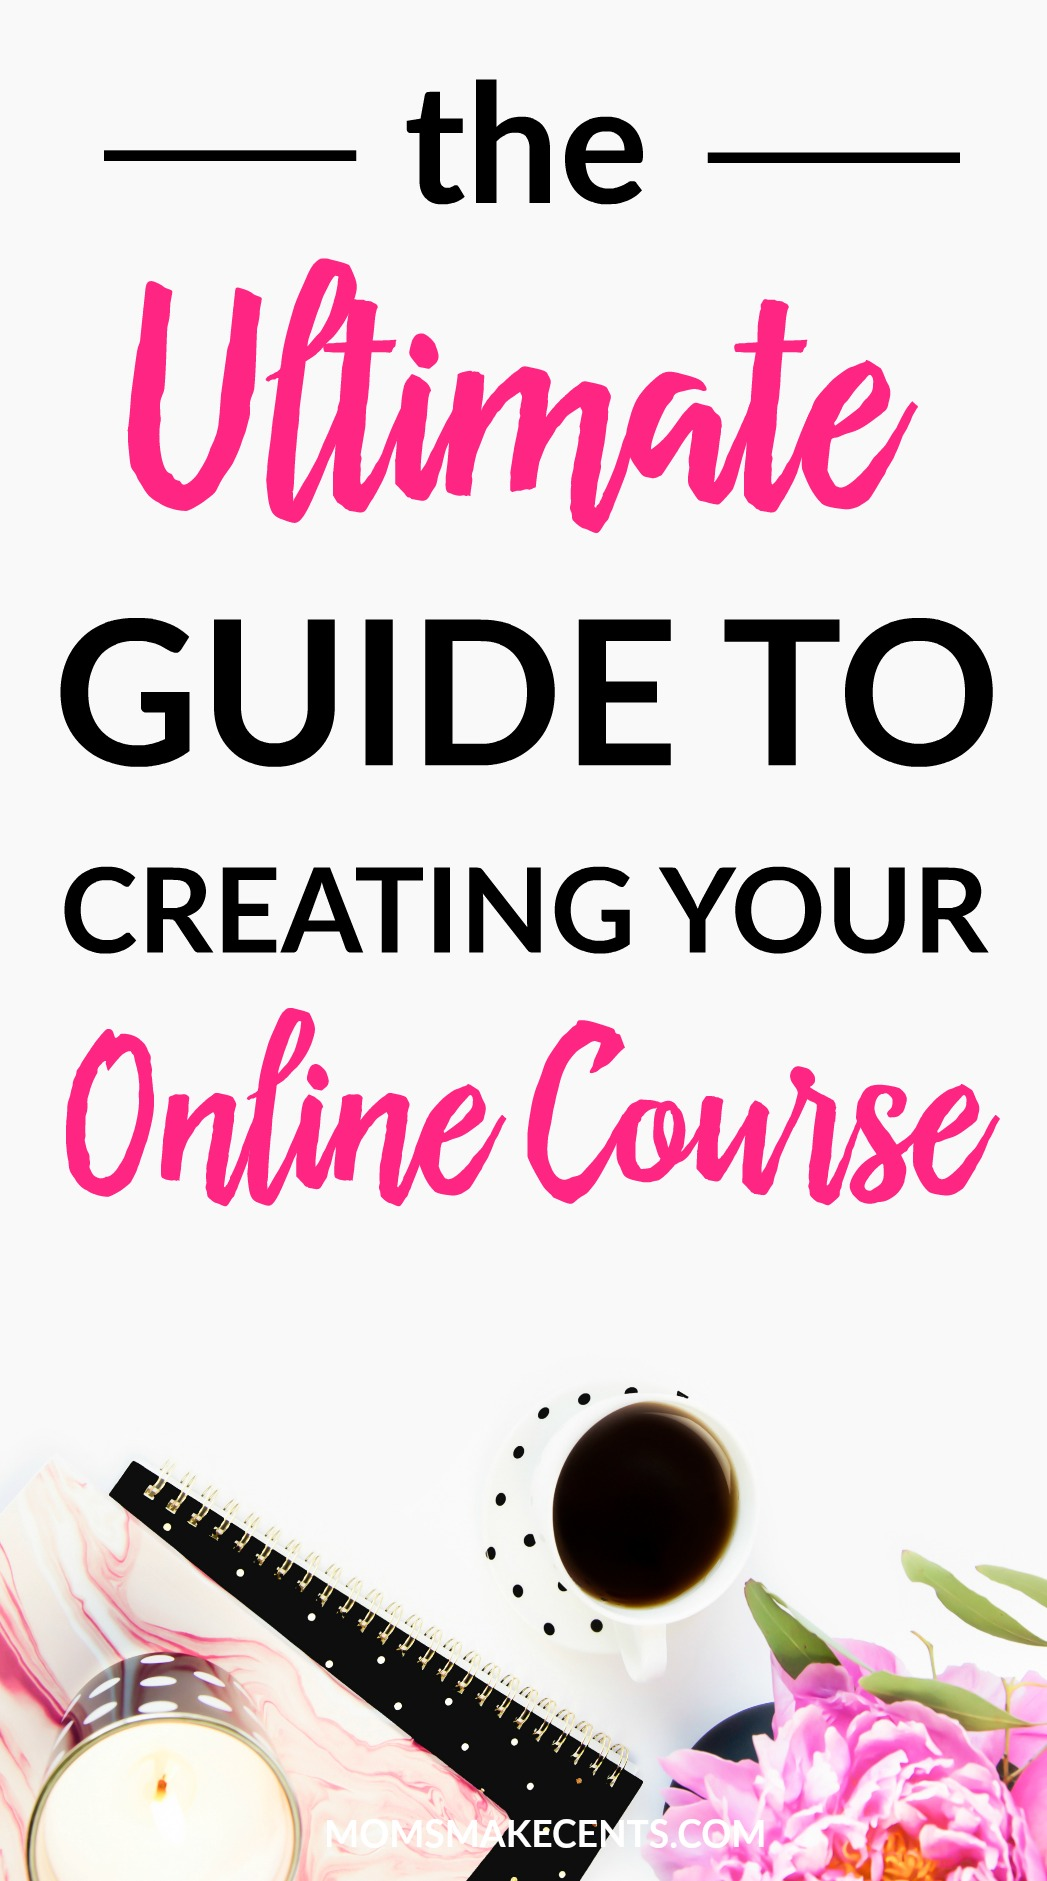 This is exactly what I was looking for! She covers it all. This is a must read for anyone considering creating an online course. Plus, her Teachable tutorial was super helpful.